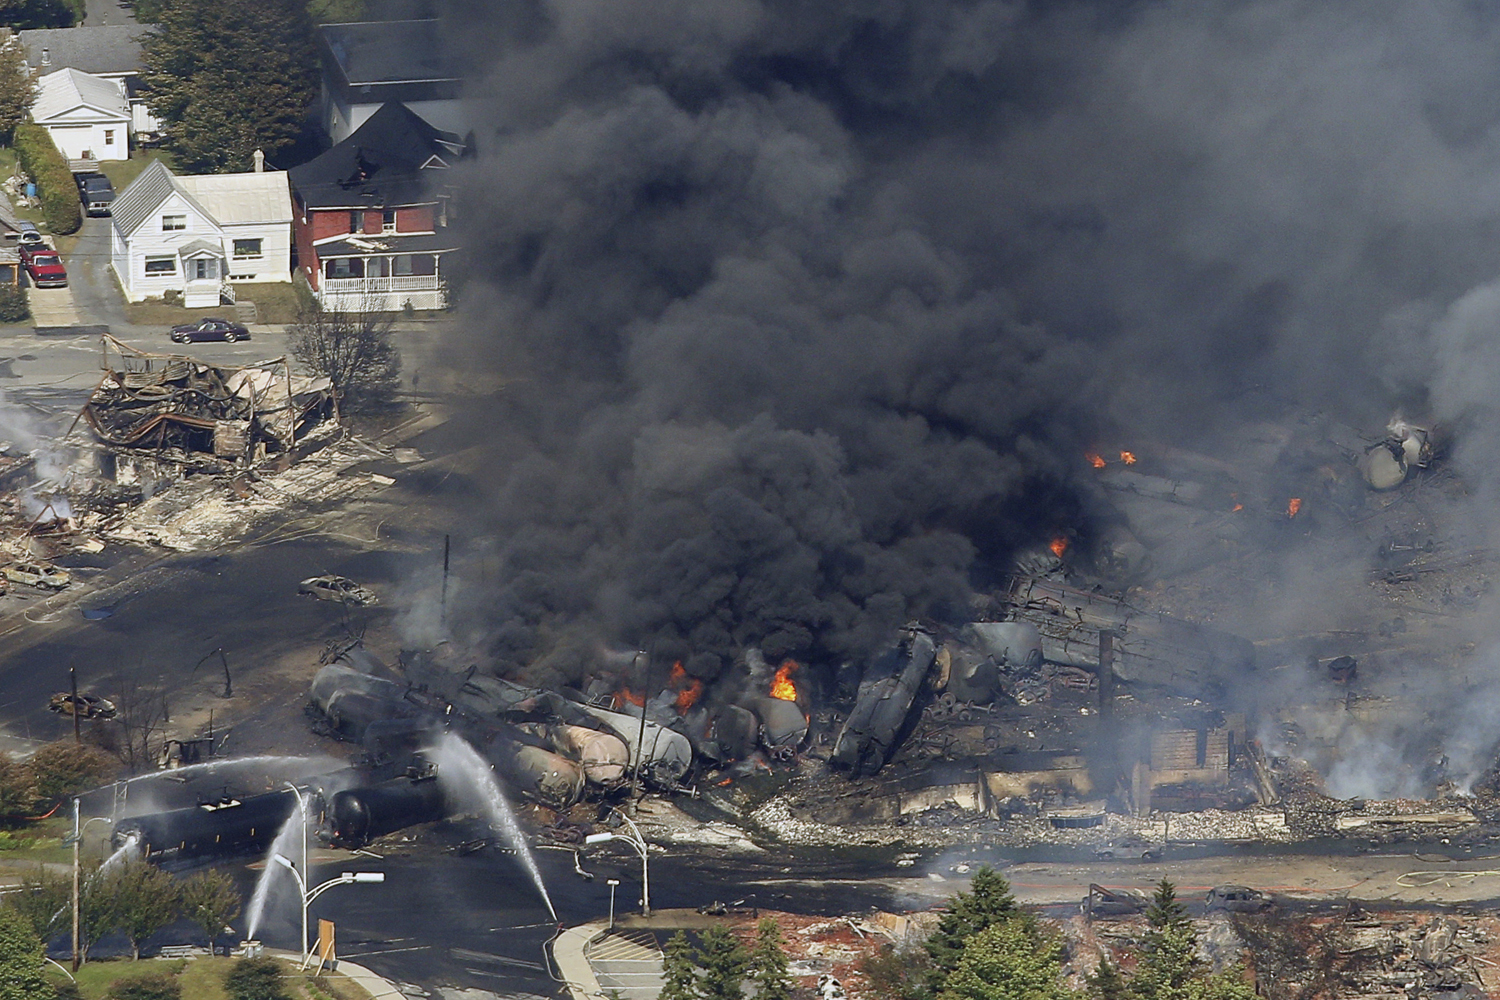 July 6, 2013. The wreckage of a train is pictured after an explosion in Lac Megantic, Quebec.